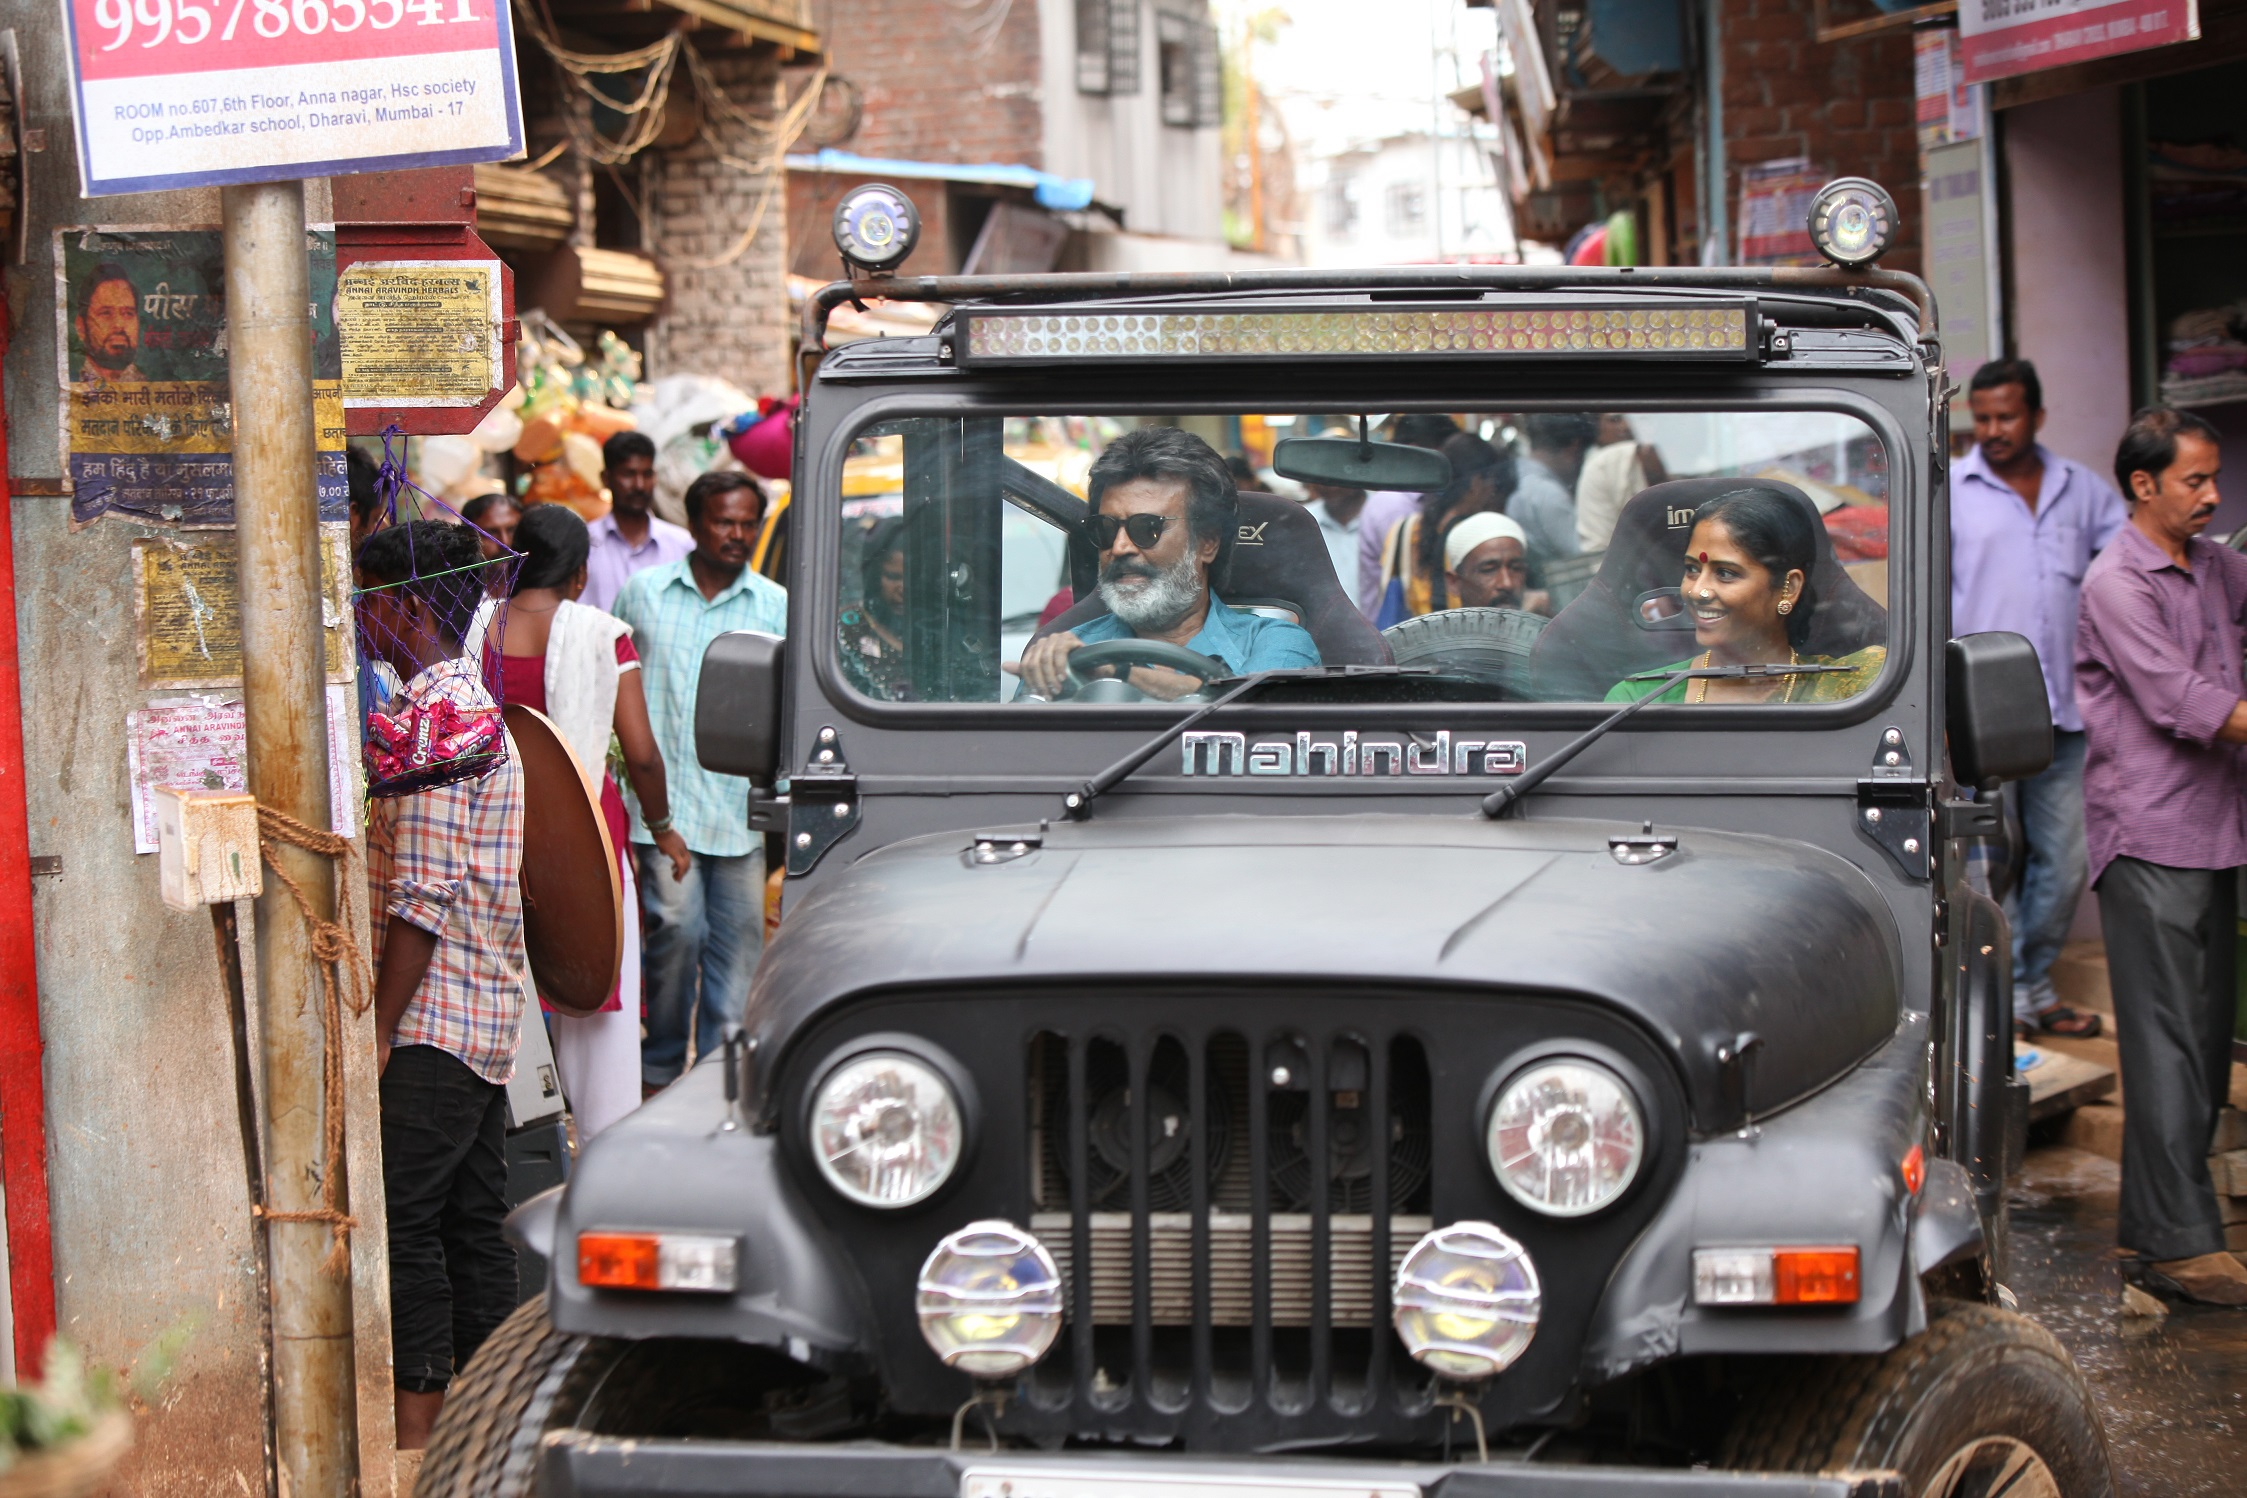 Kaala comes from Pa Ranjith, who directed Madras and Kabaali. It is produced by Dhanush.